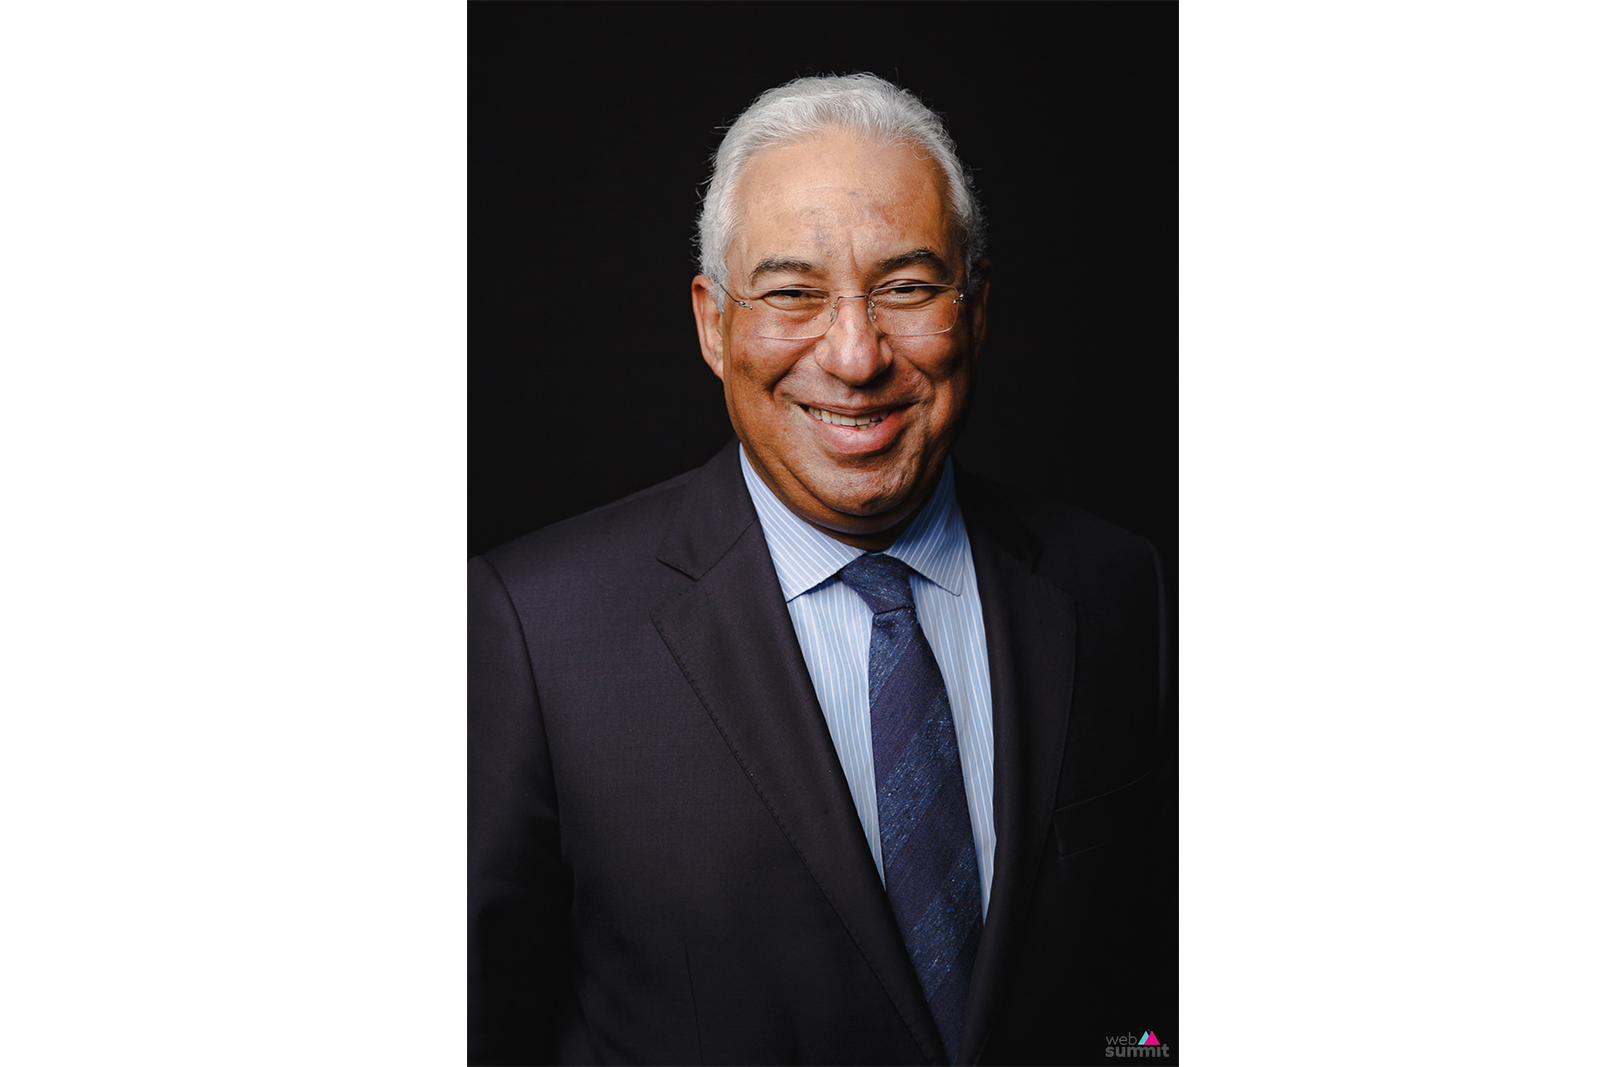 António Costa, Prime-Minister of Portugal (2015-2019)